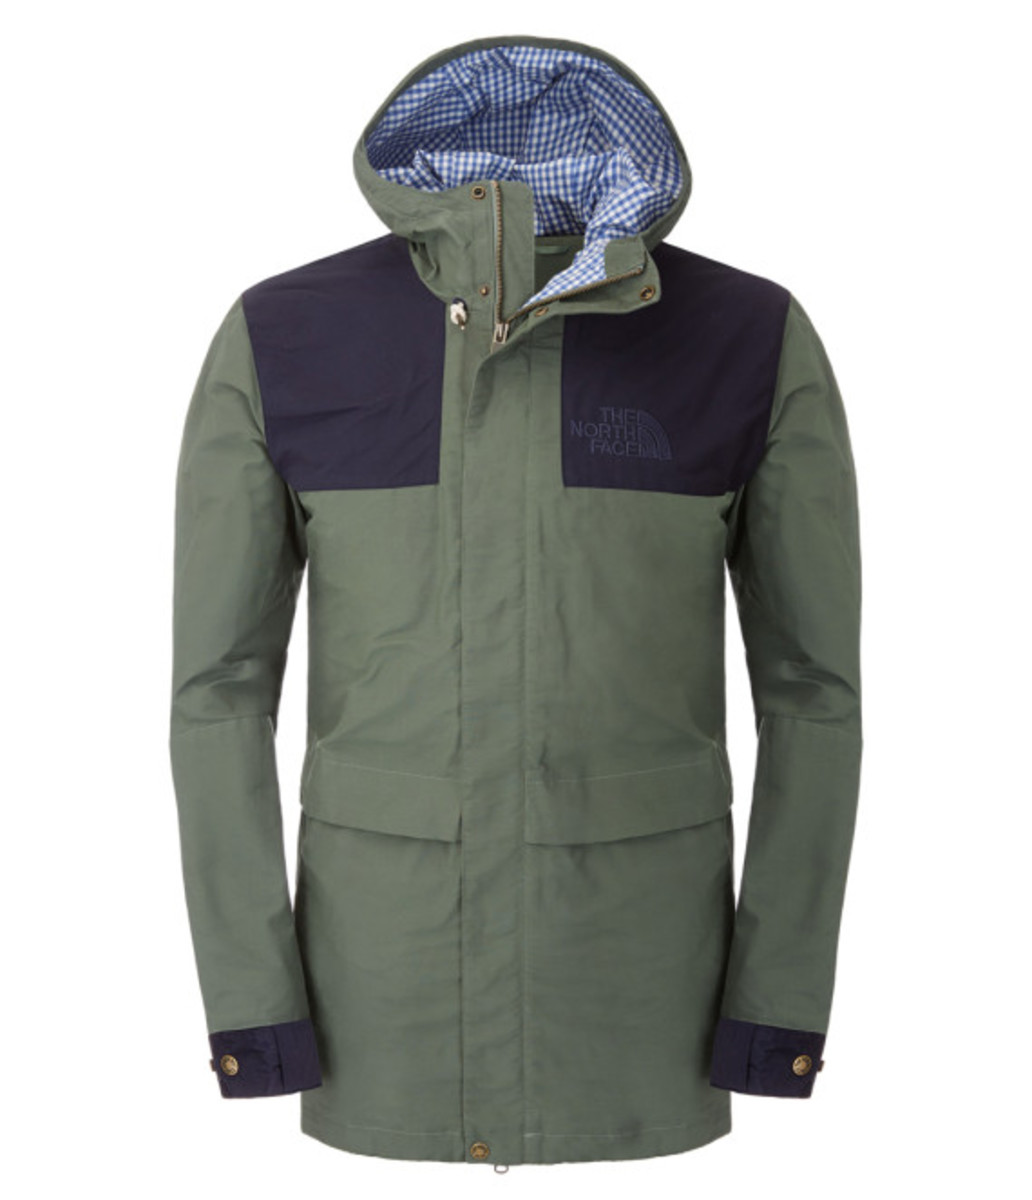 the-north-face-mountain-jacket-04